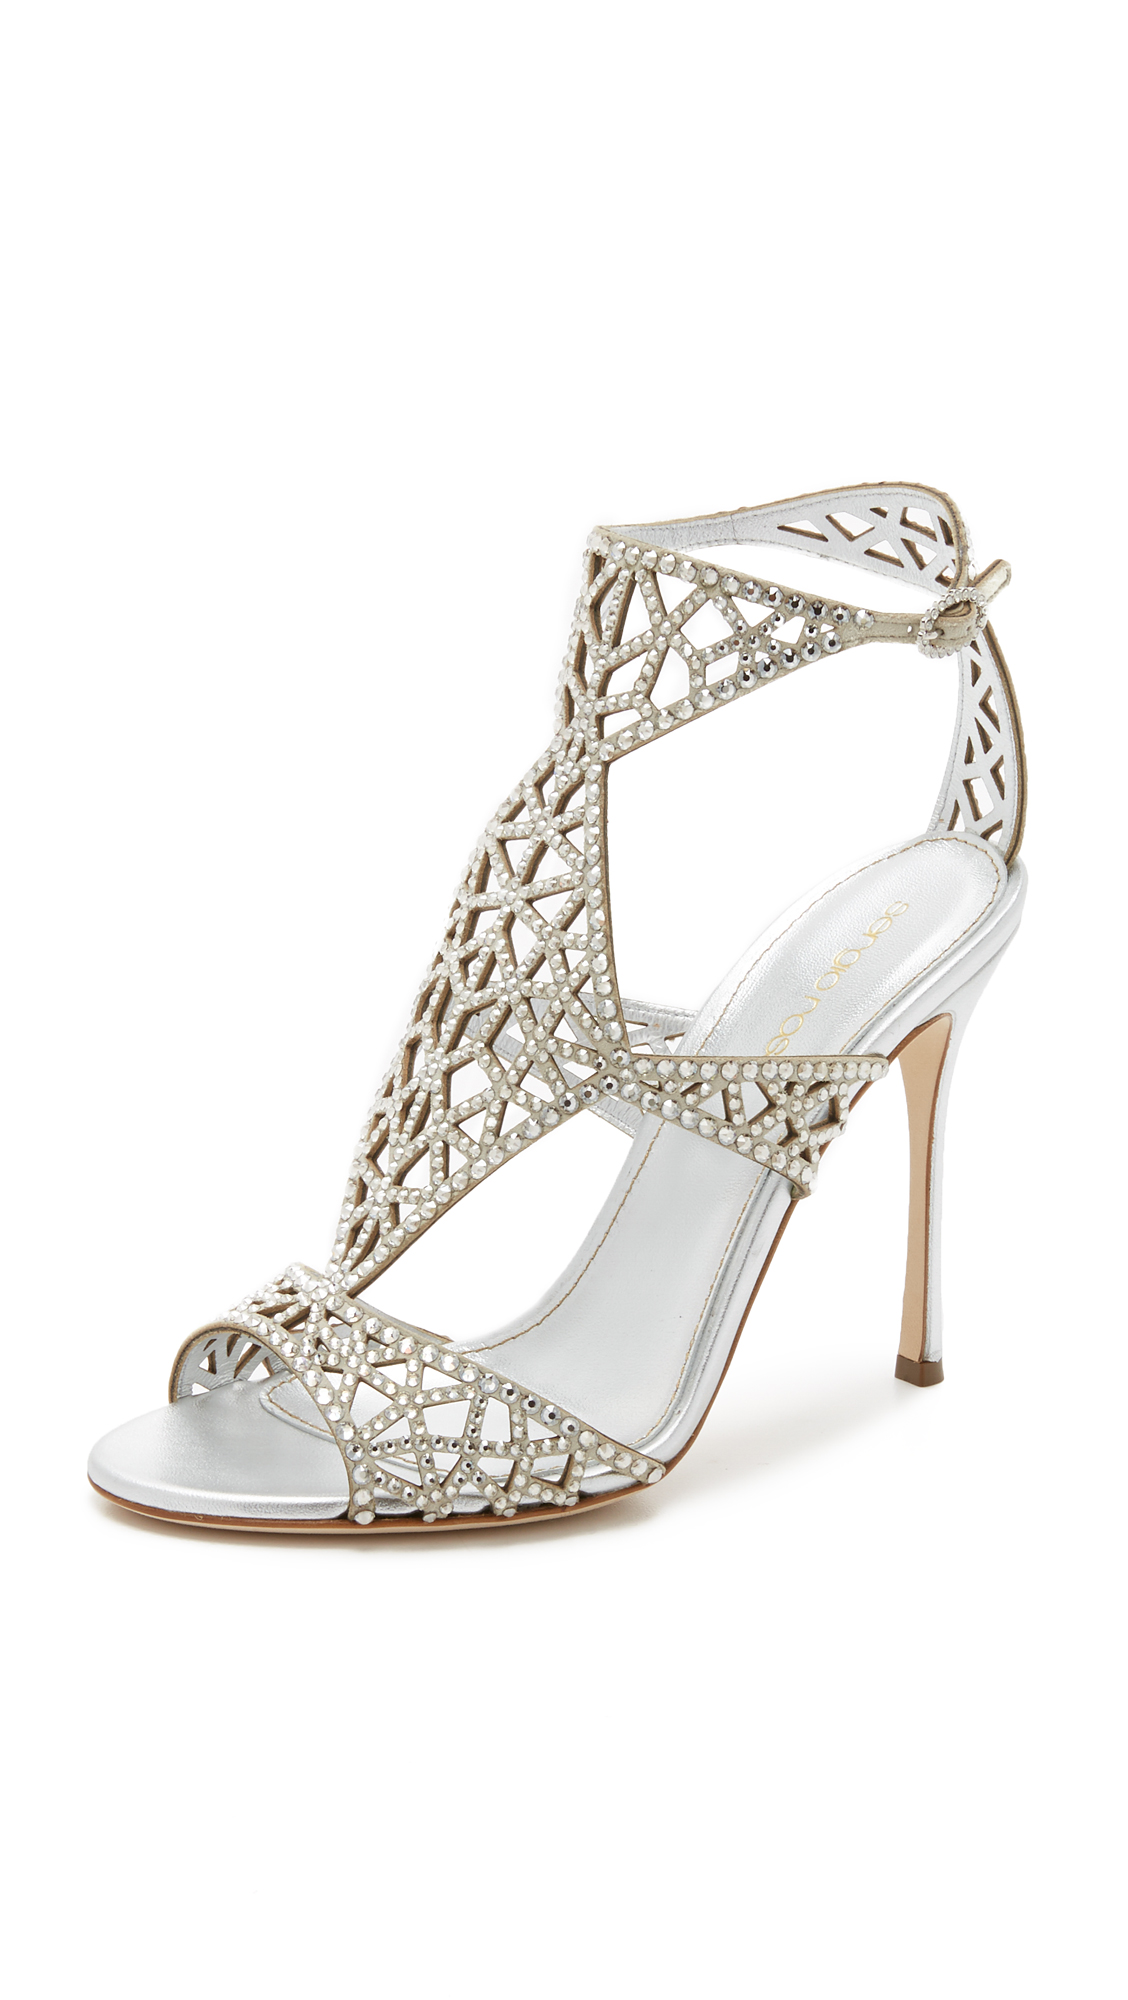 Sergio Rossi Tresor Sandals at SHOPBOP.COM - FASTEST FREE SHIPPING WORLDWIDE. Buy Sergio Rossi Online